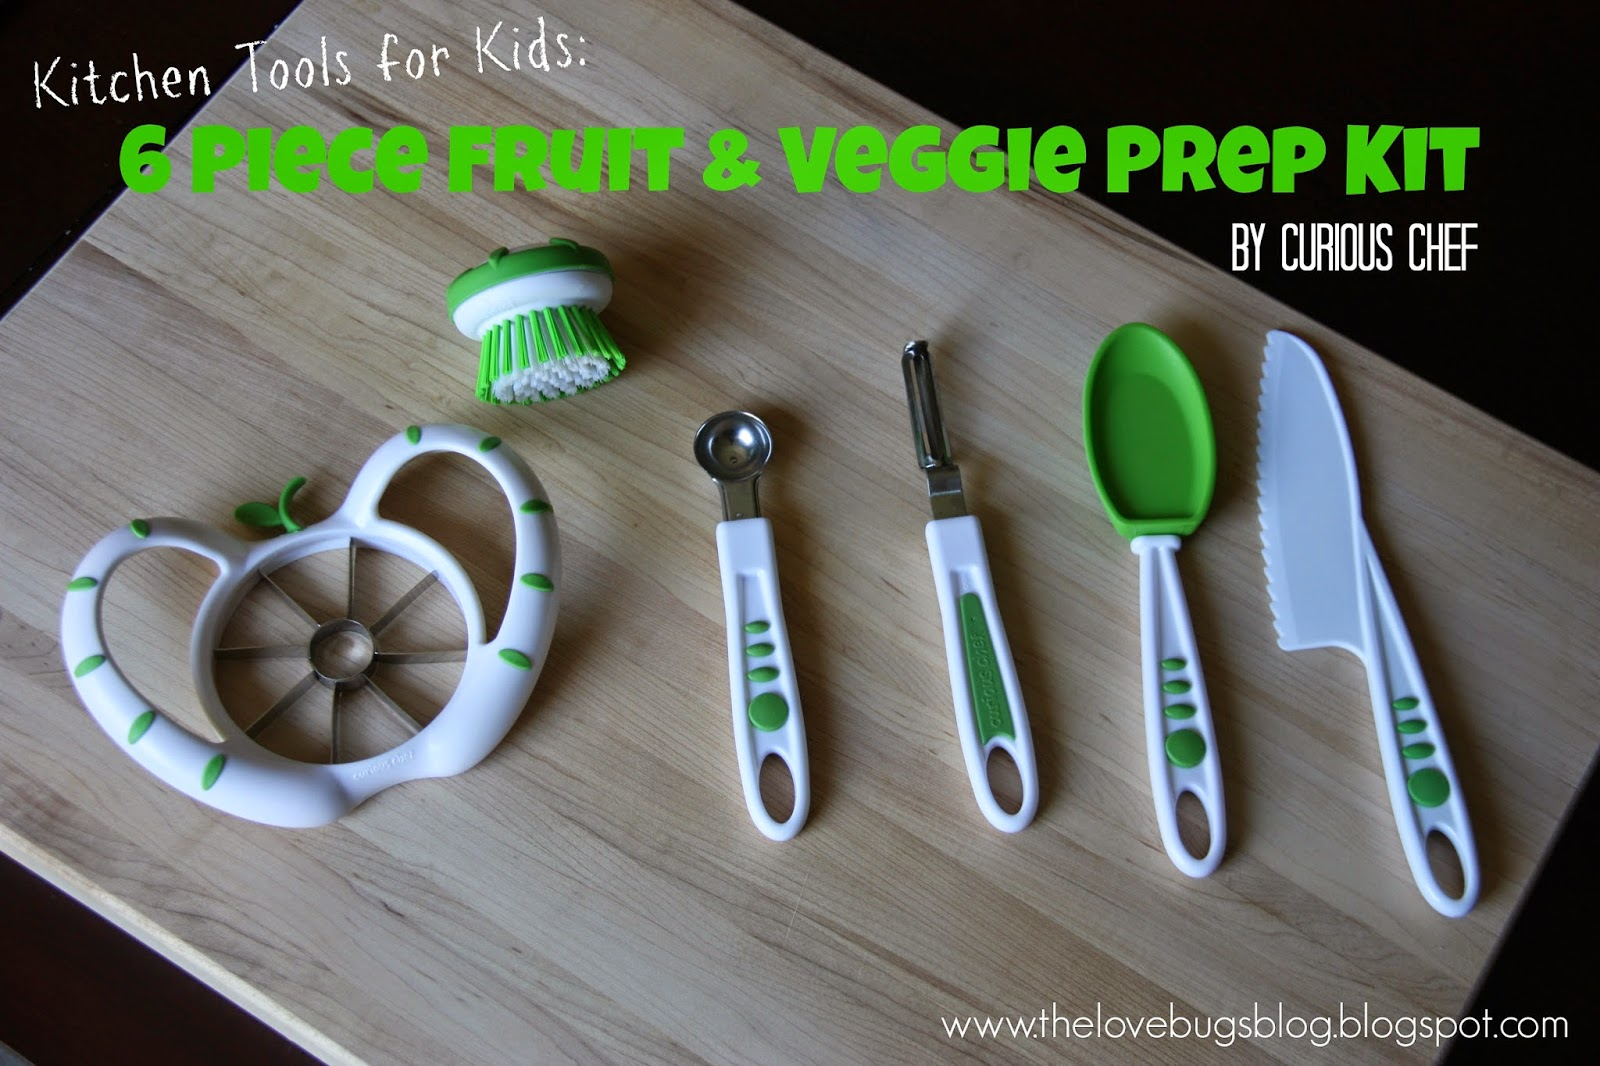 Kitchen Tools for Kids: Curious Chef Fruit & Vegetable Prep Kit